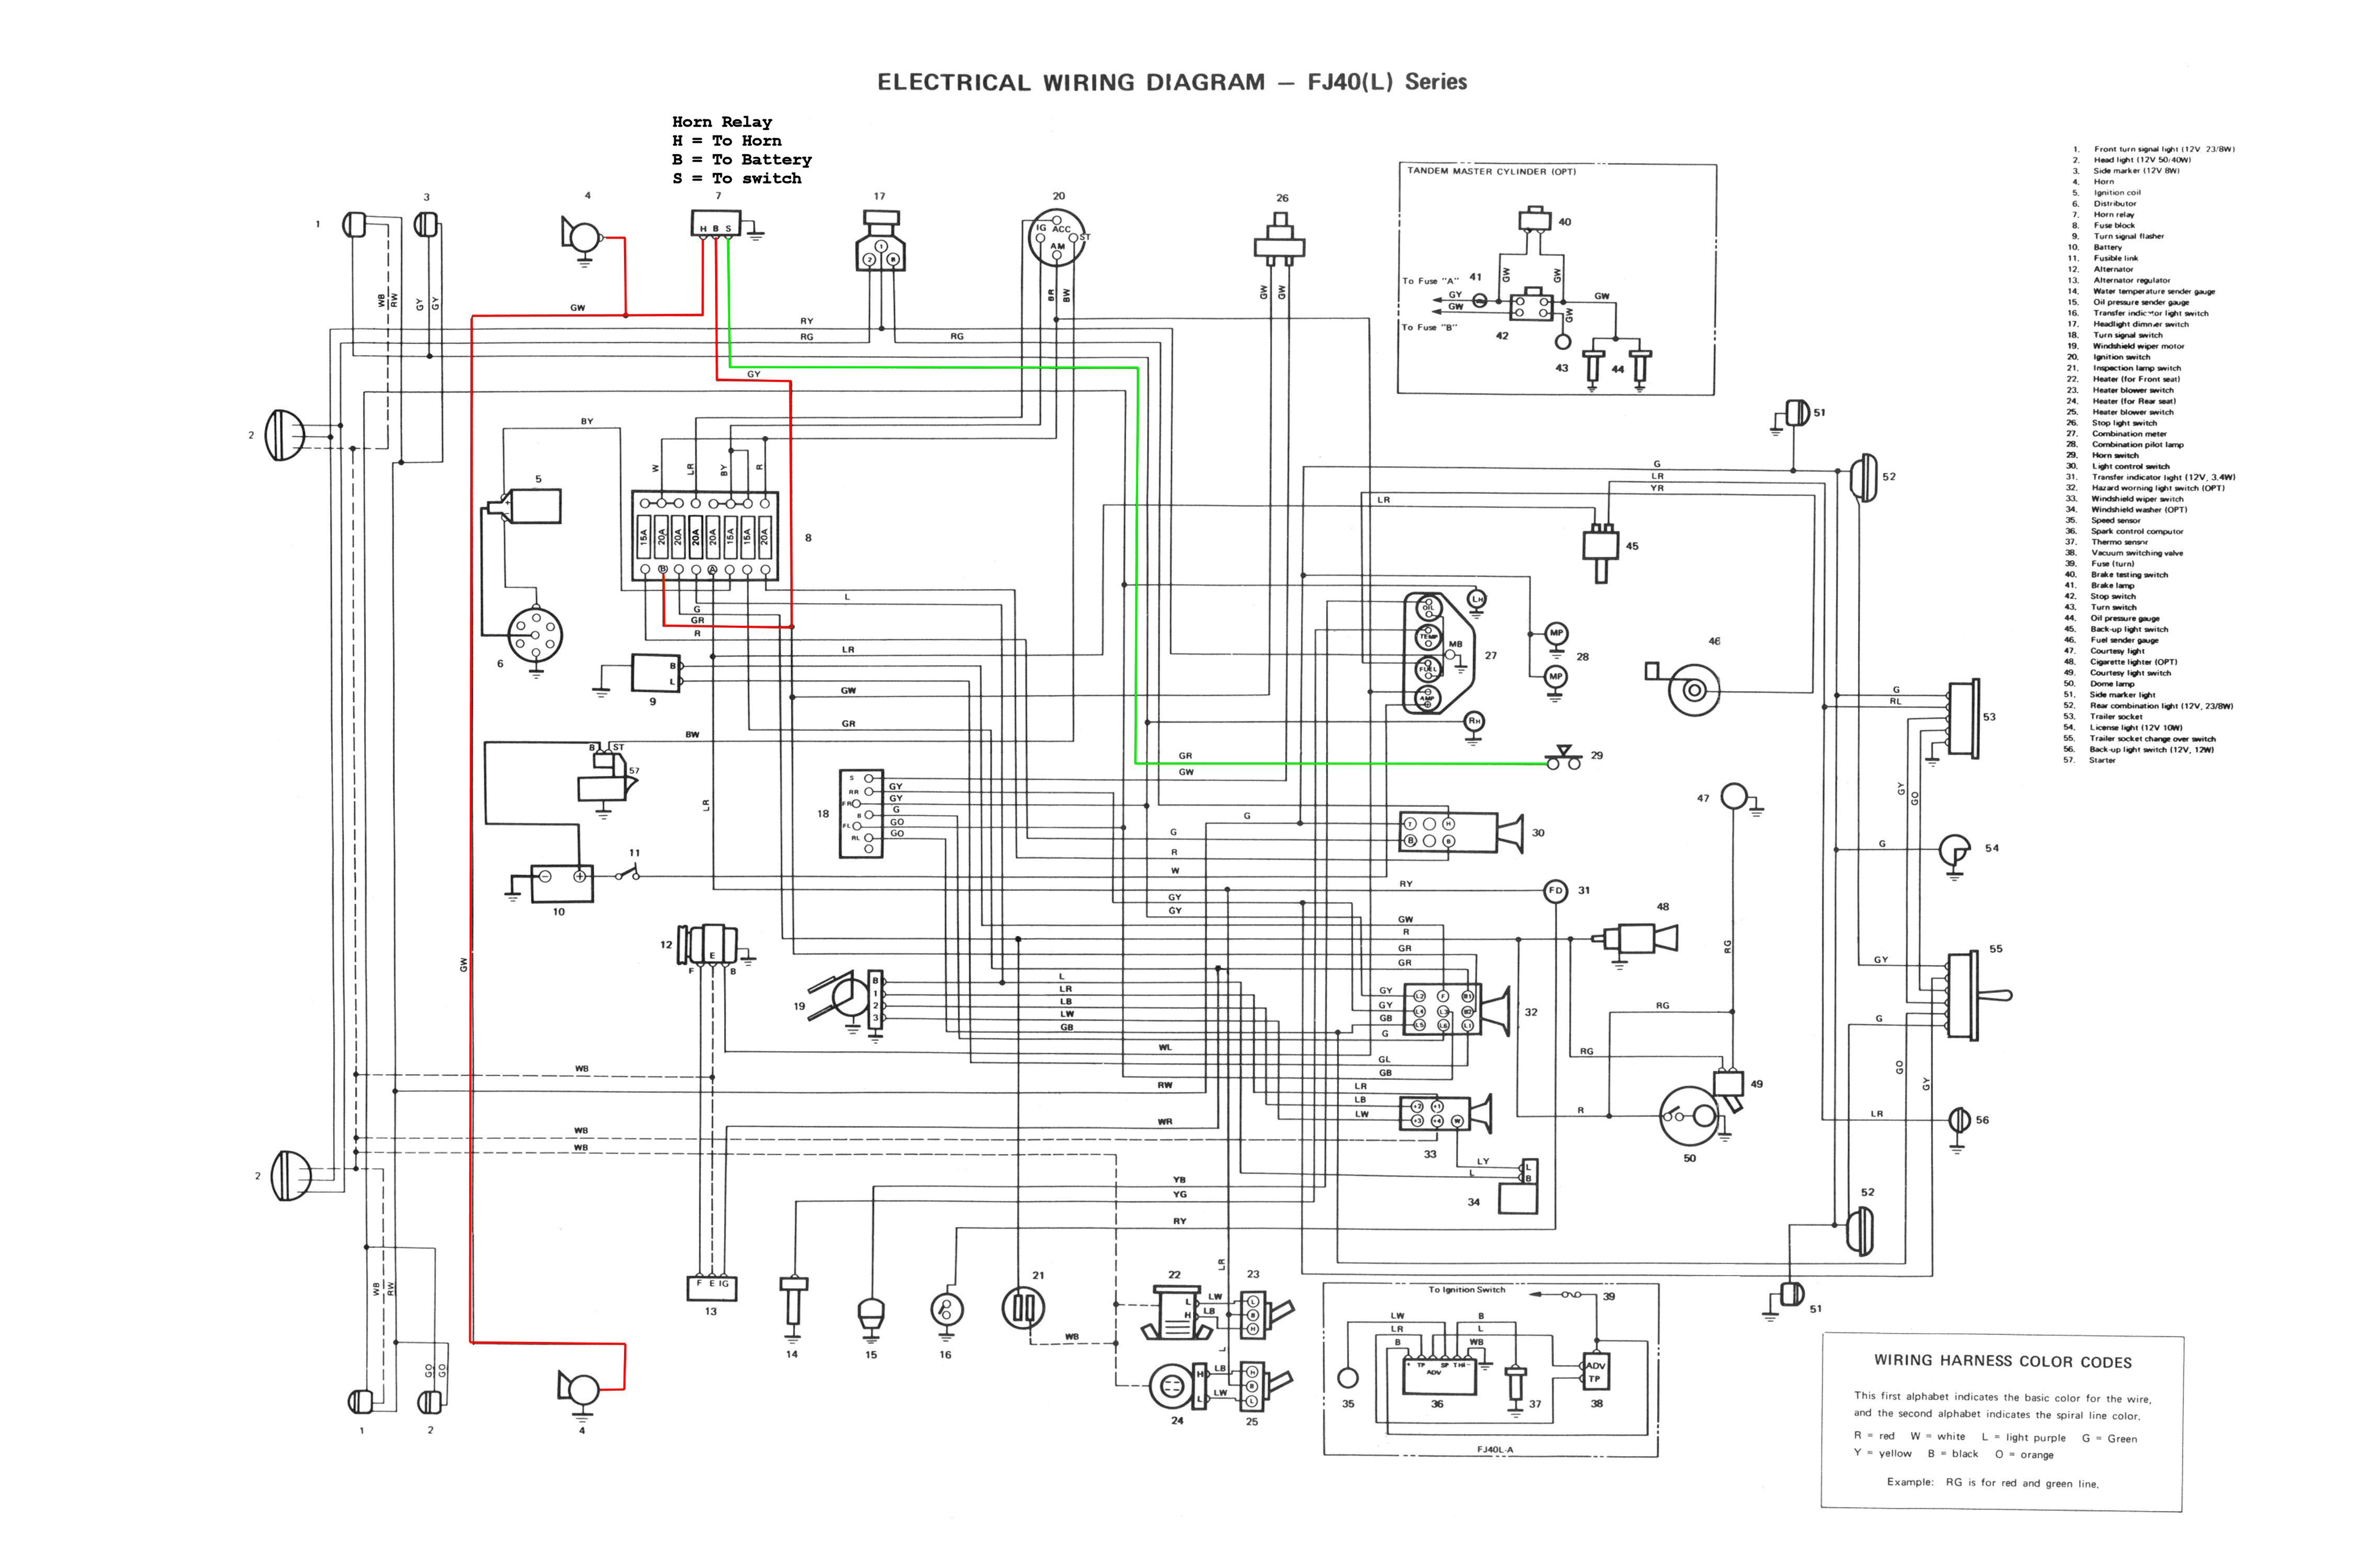 343ElectricalWiringDiagramFJ40(L) vdj79 wiring diagram toyota vdj79 wiring diagram \u2022 wiring diagrams In a 98 Dodge Dakota Wiring Harness at creativeand.co